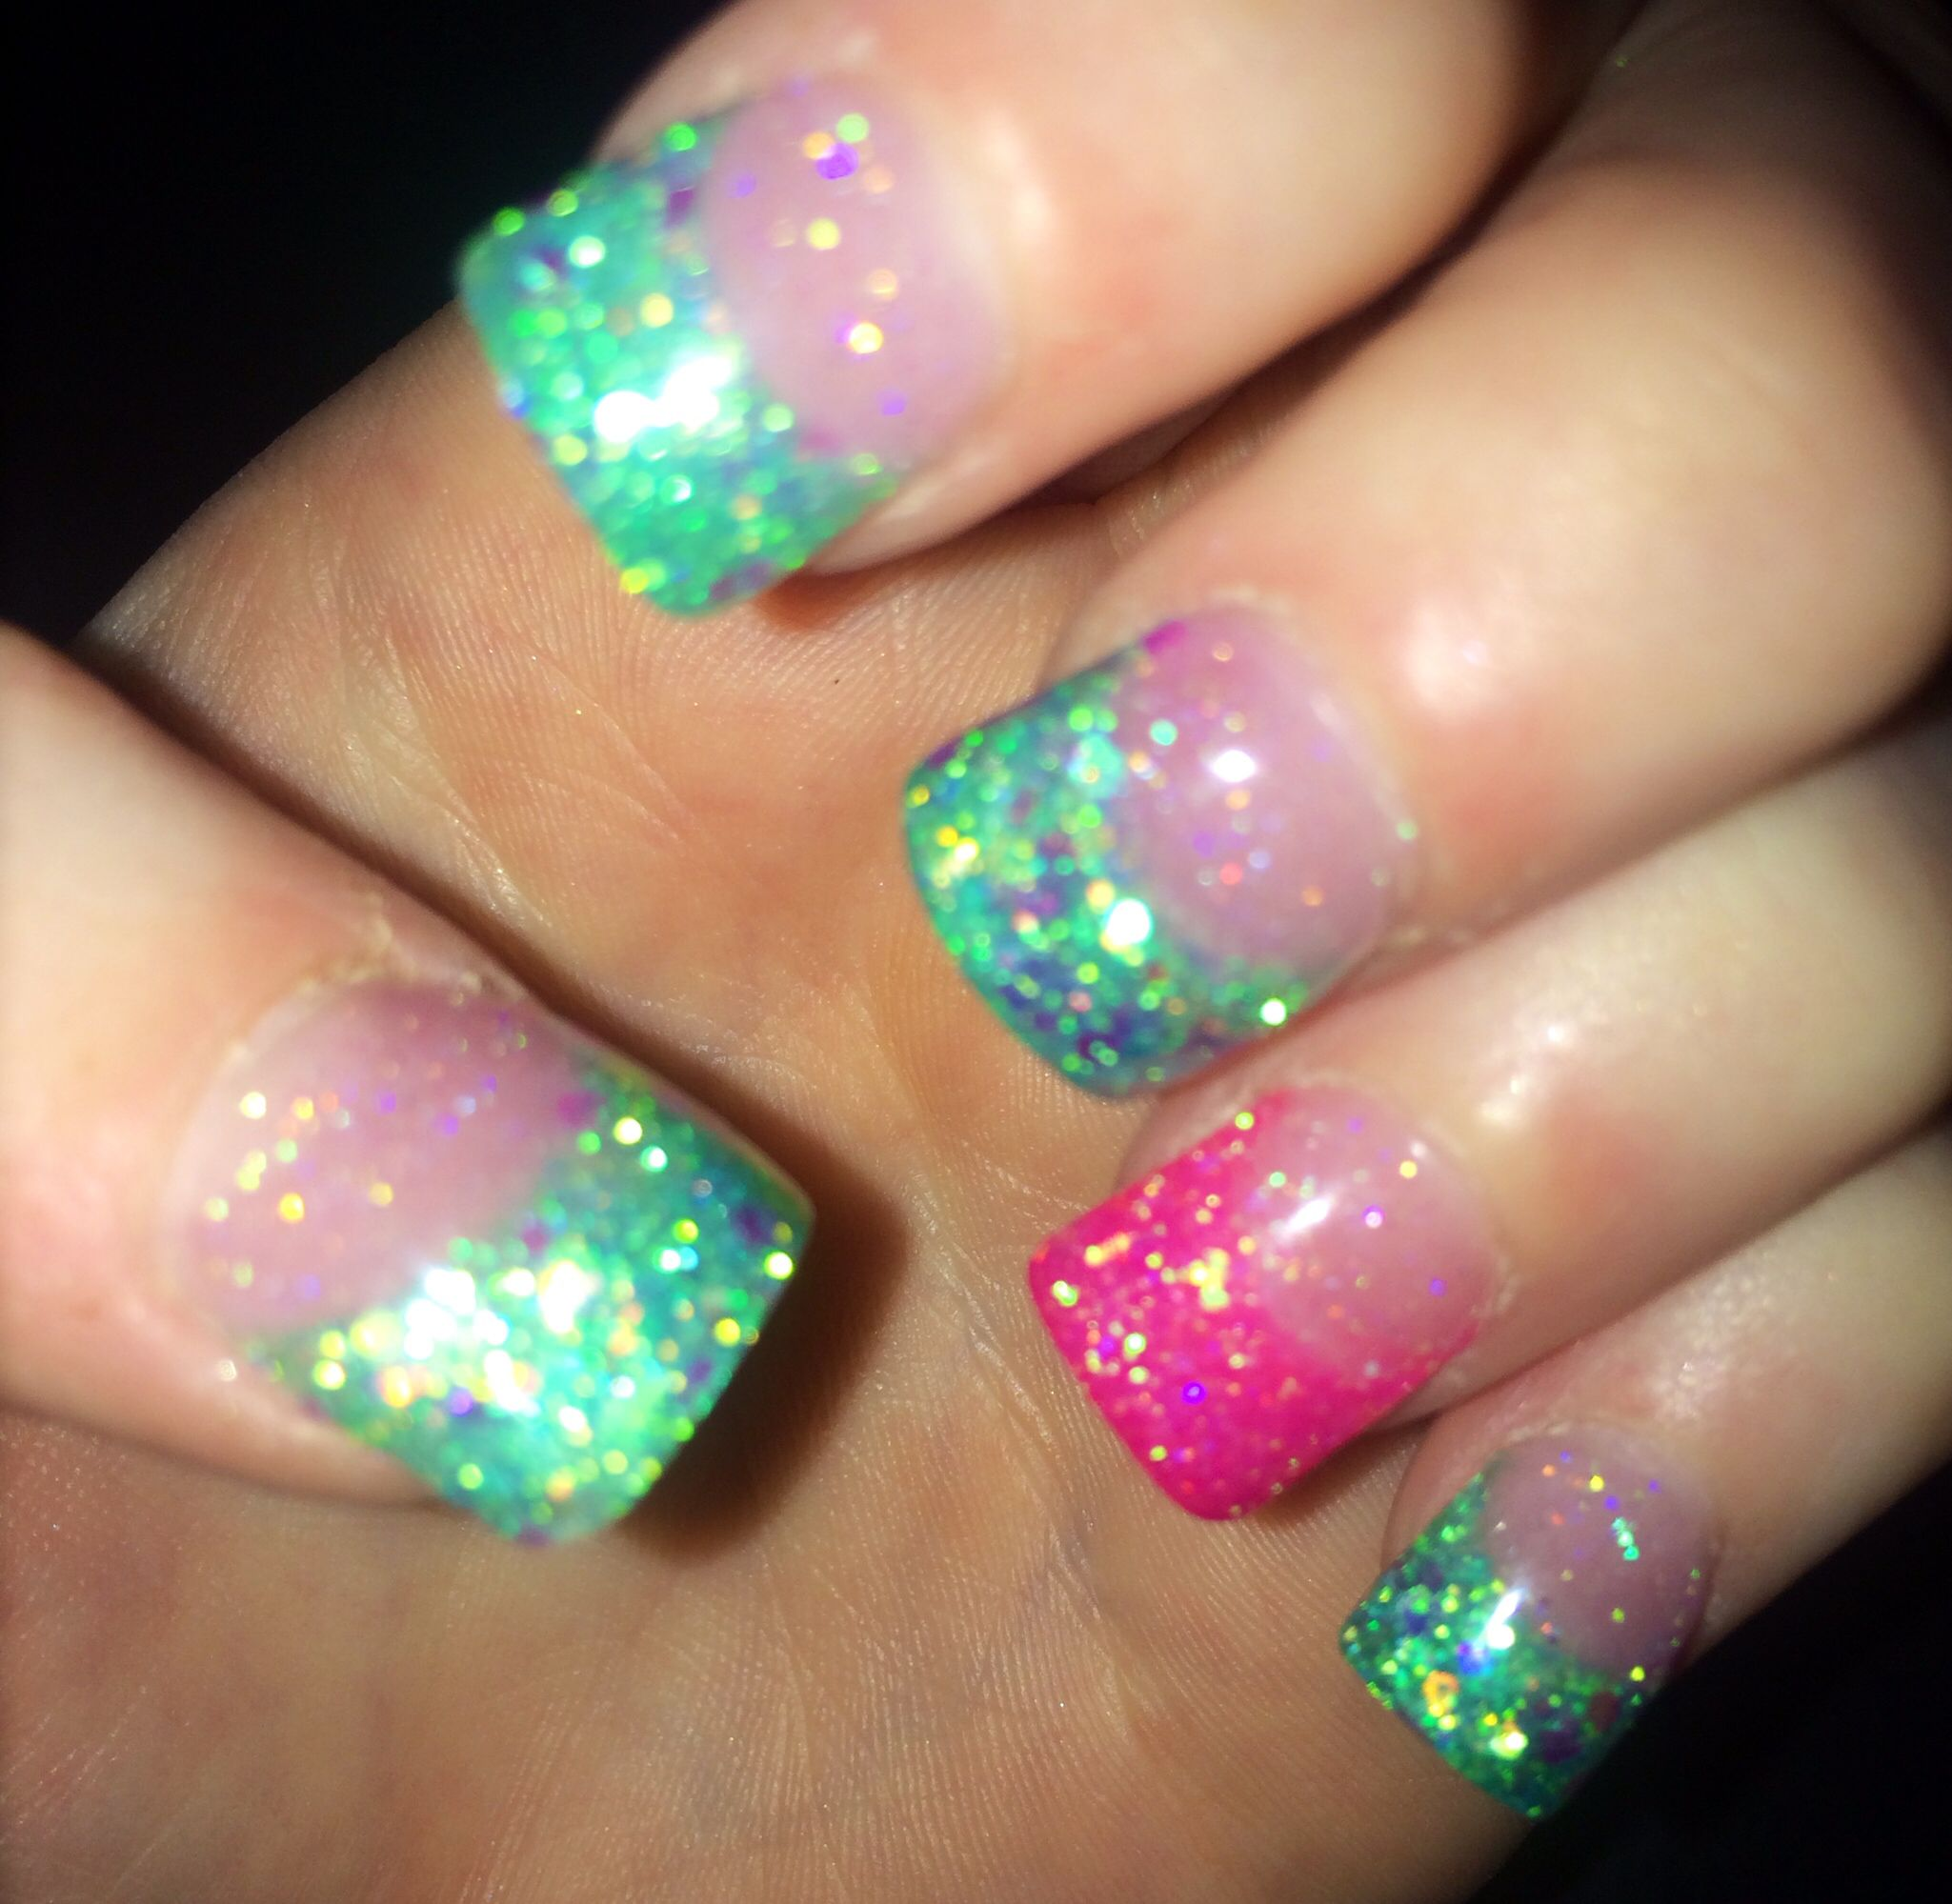 Teal and pink glitter acrylic nails   Nails   Pinterest   Uñas ...